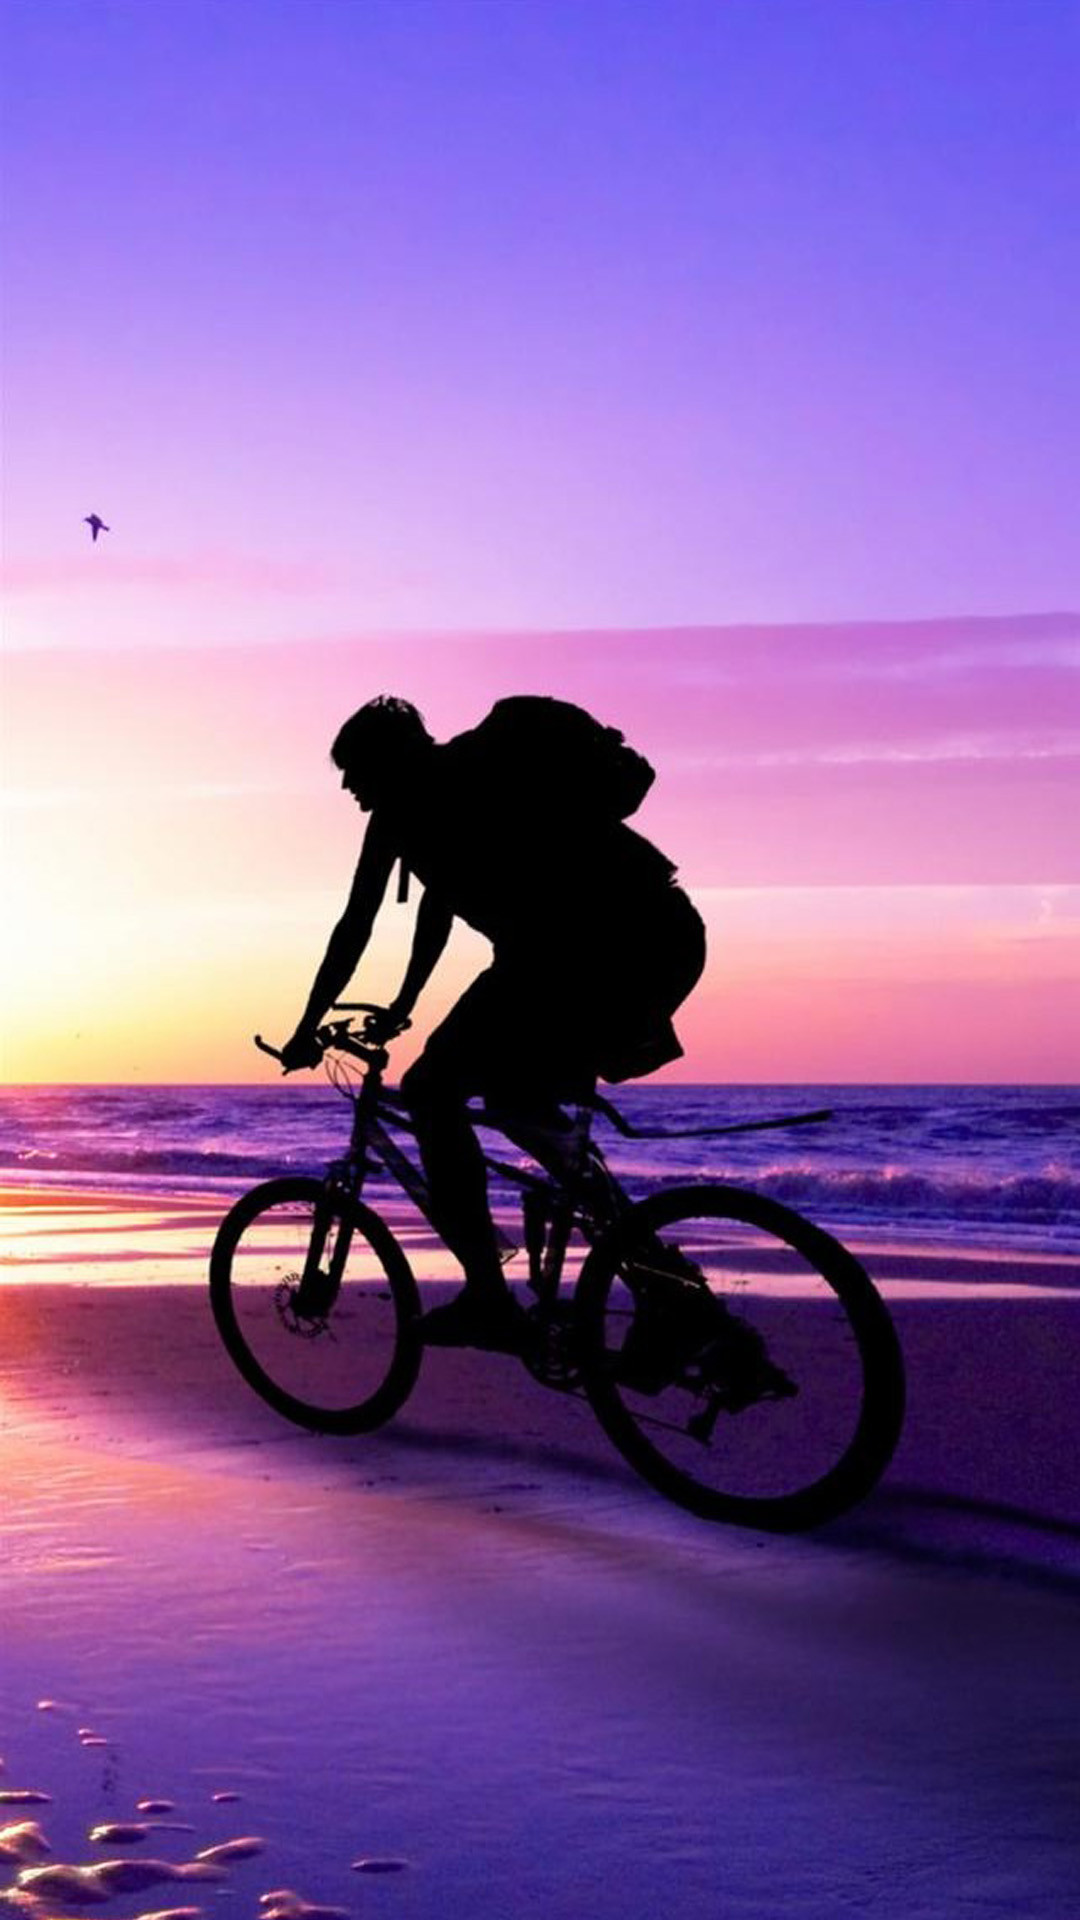 Beach Sunset Bicycle Ride iPhone 6 Plus hd Wallpaper